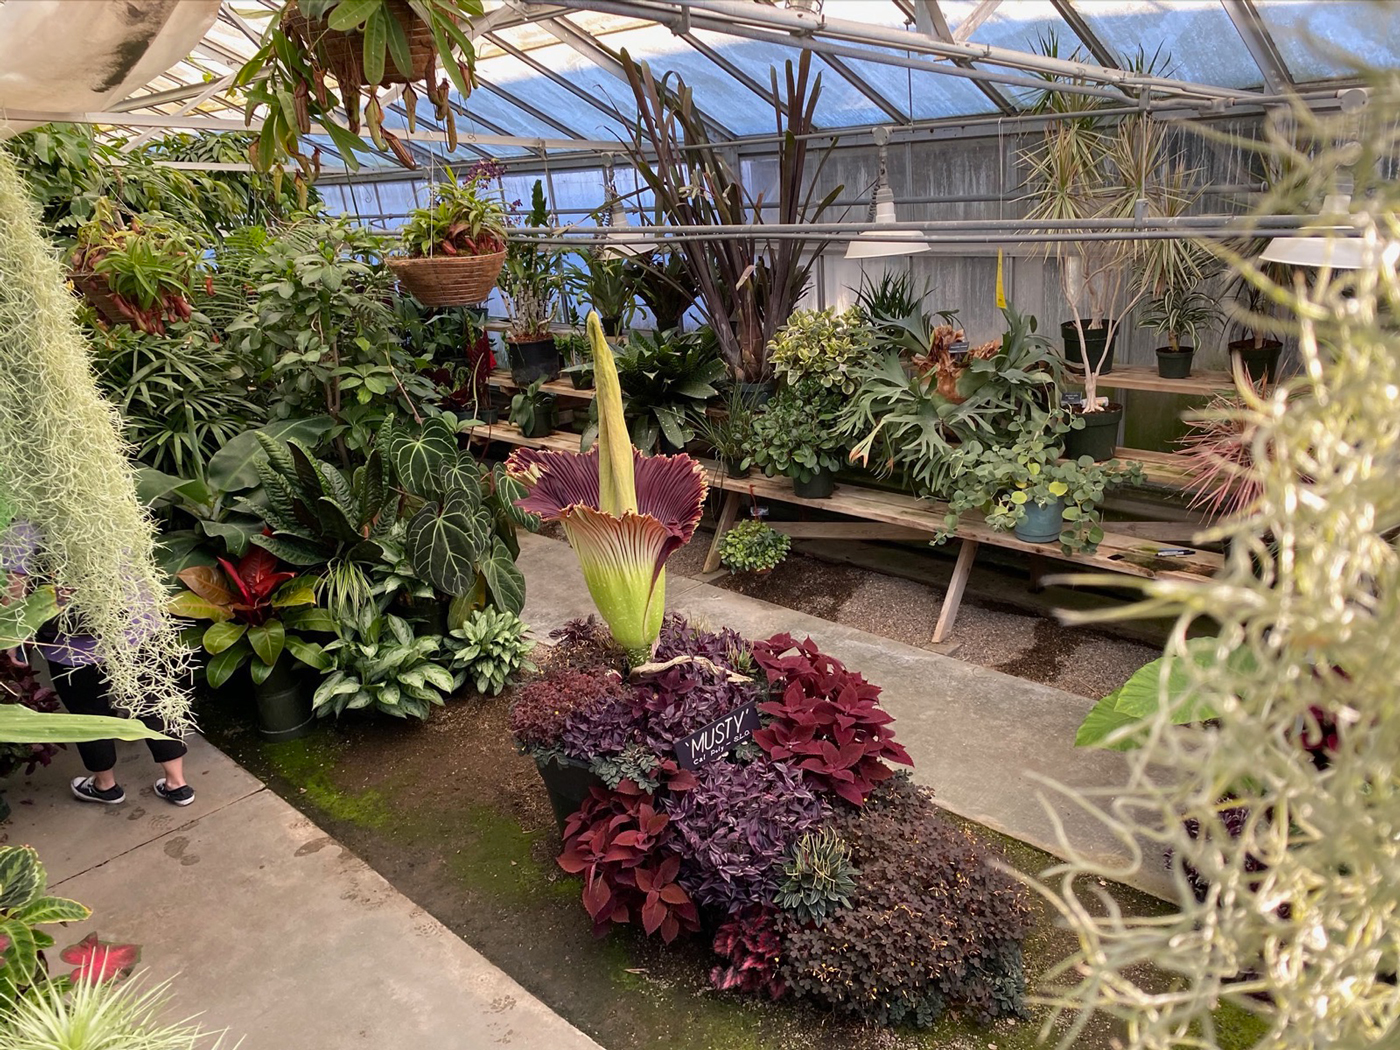 Rare Corpse Flower Bloomed At Cal Poly Plant Shop Mustang News